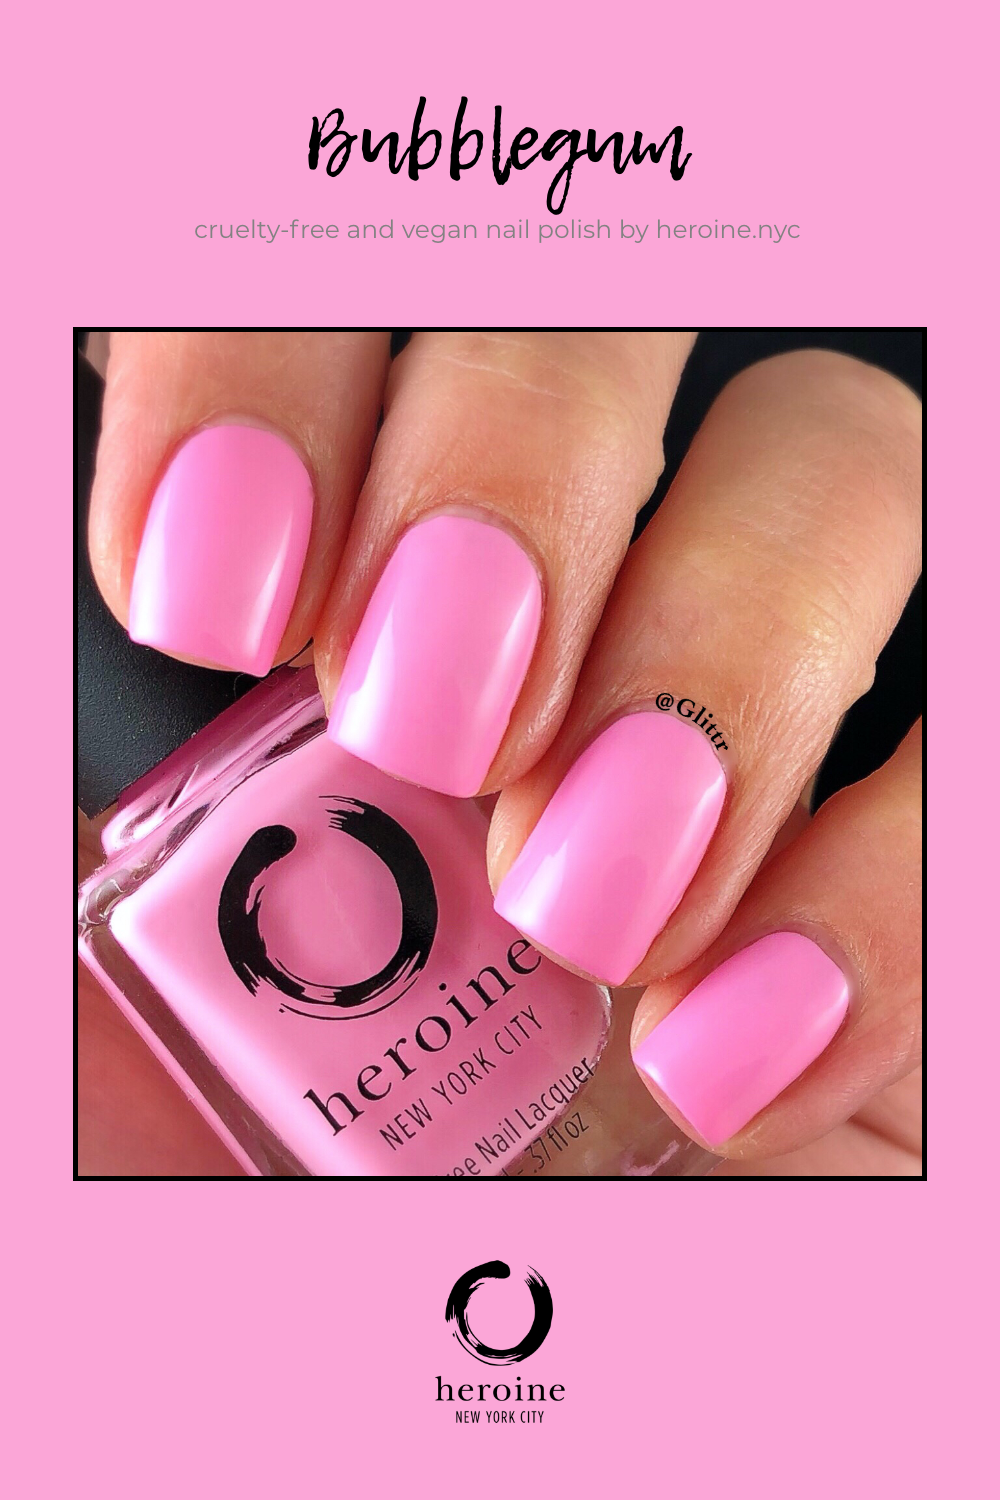 BUBBLEGUM in 2020 Nail polish, Nails, Cruelty free nail